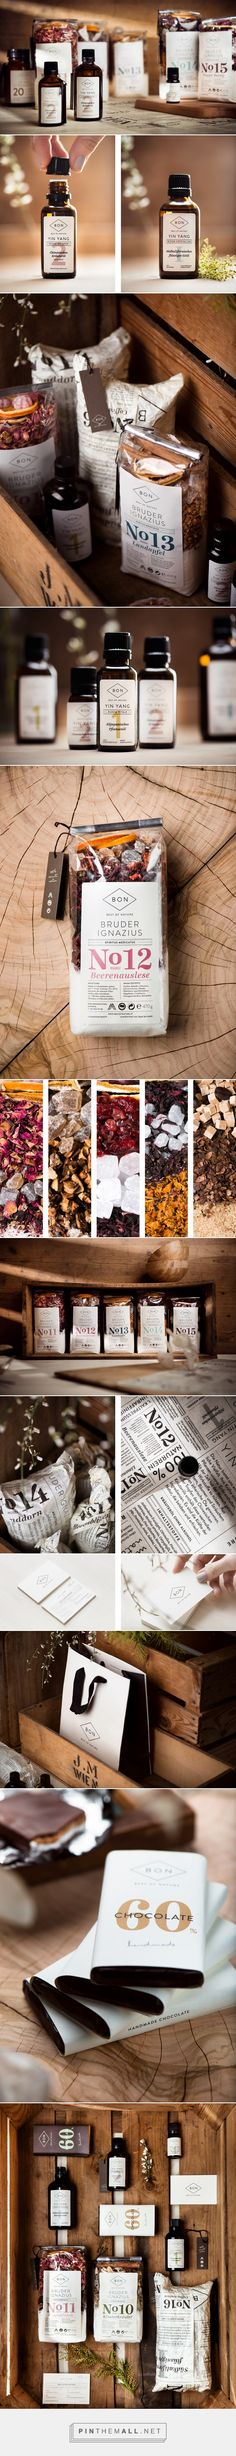 Best of Nature by moodley brand identity. Branding, Packaging, Web Design on Behance curated by Packaging Diva PD. Best Of Nature, short BON, only uses the most natural ingredients in traditional recipes in minimalist packaging.